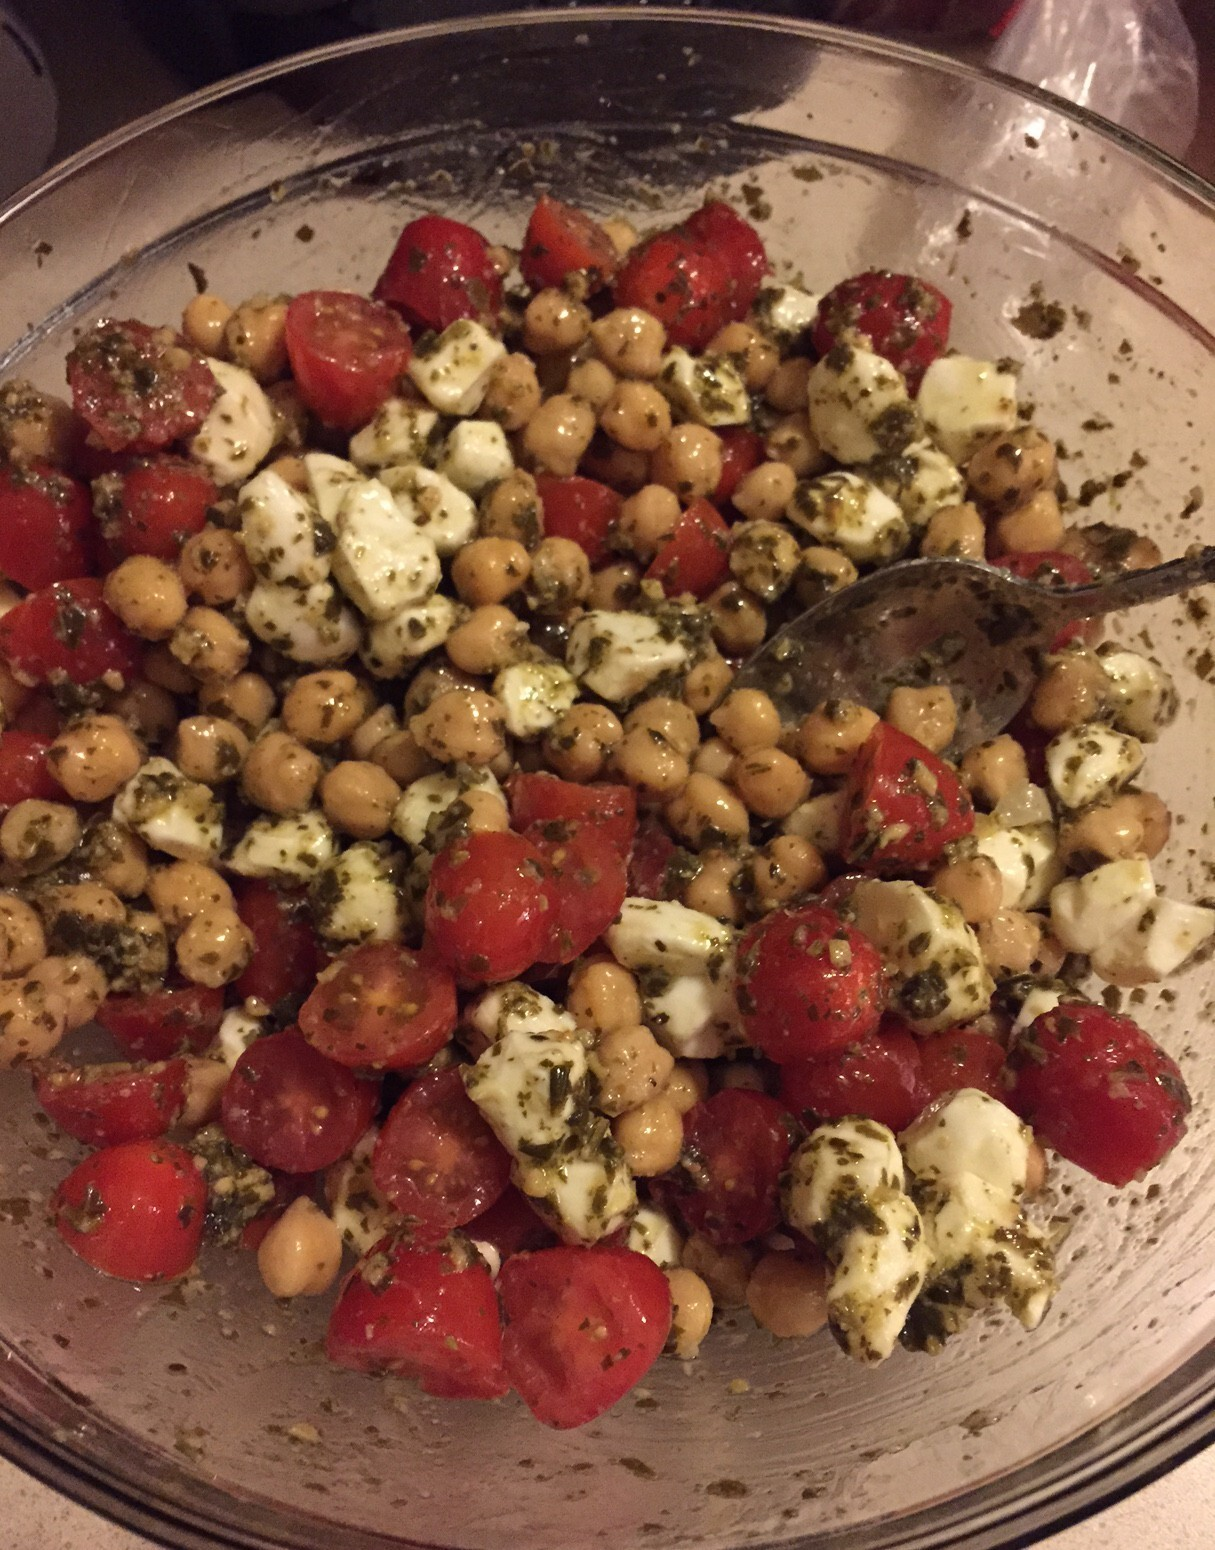 Chickpea, Tomato, and Mozzarella Salad with Pesto